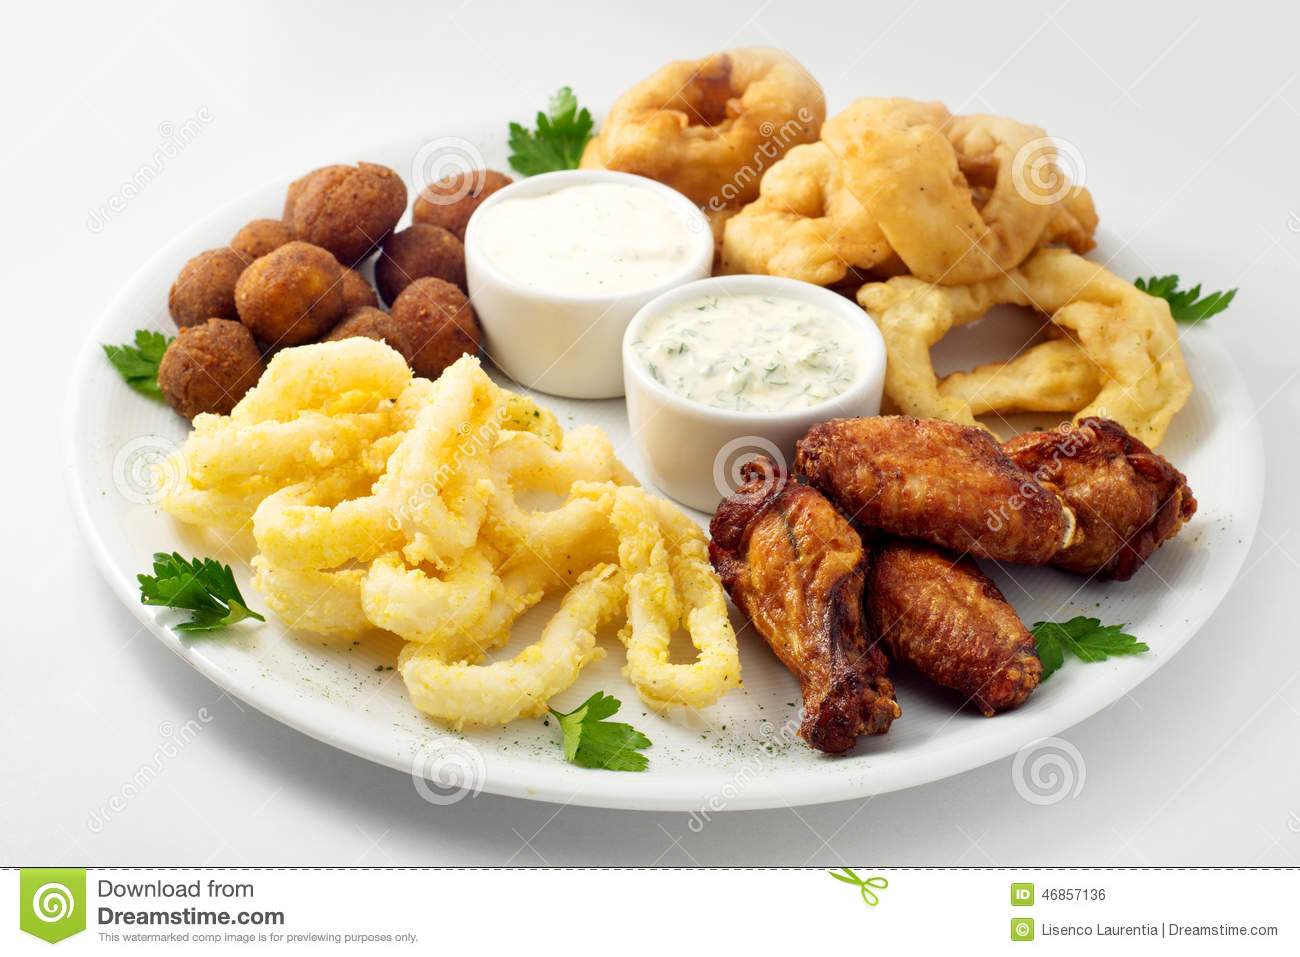 The Beer Plate With Spicy Chicken Wings Calamari Rings Fries Onion Rings Cheese